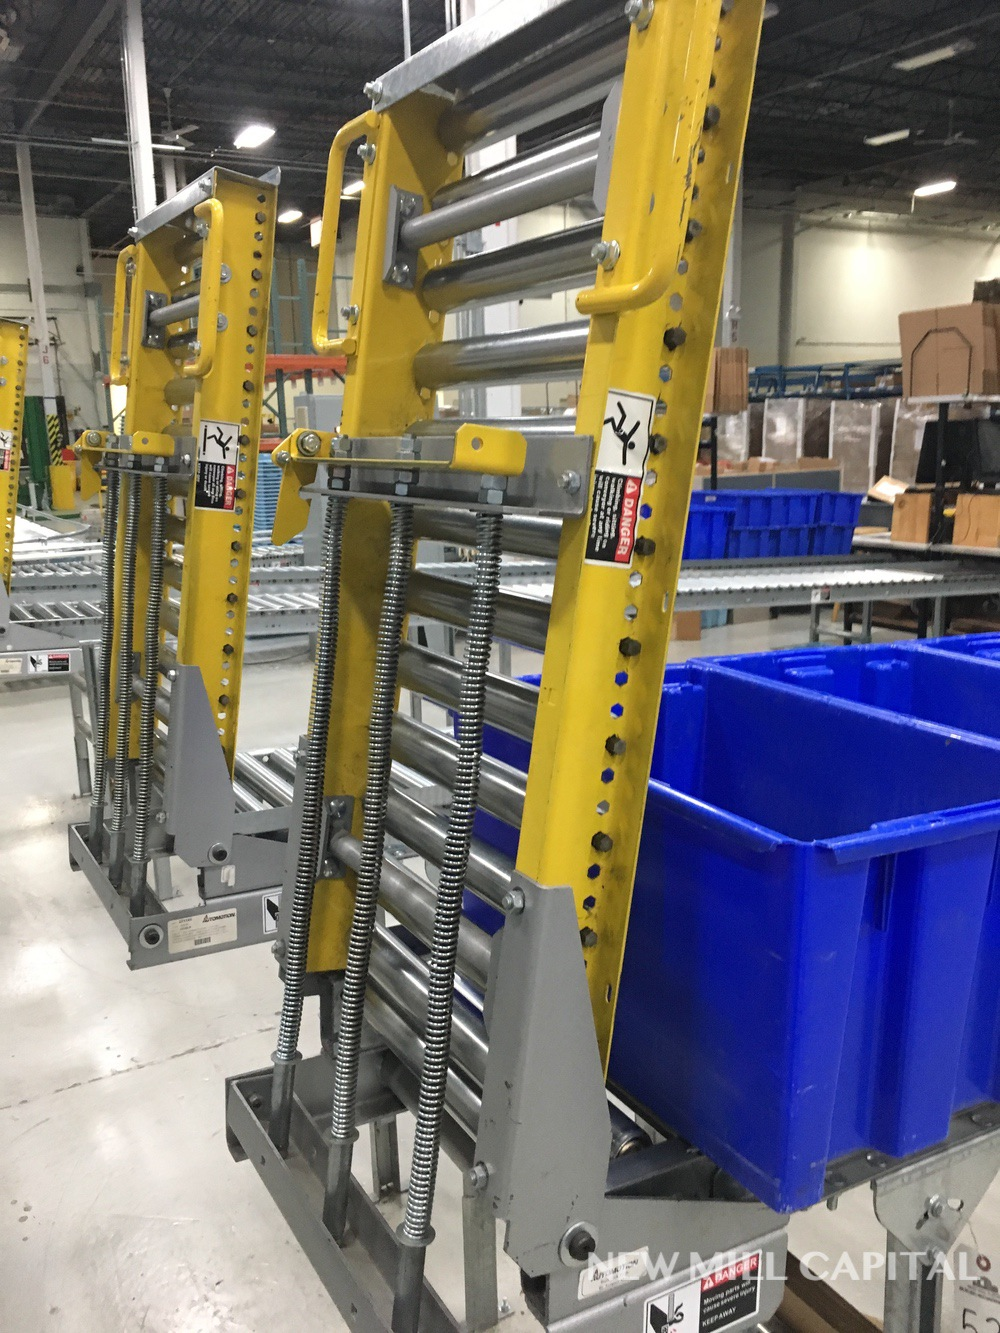 Lot 53 - Spring Assisted Roller Conveyor & Gate, Approx 20ft OA Length, 15in Wide Rol | Rig Fee: $150